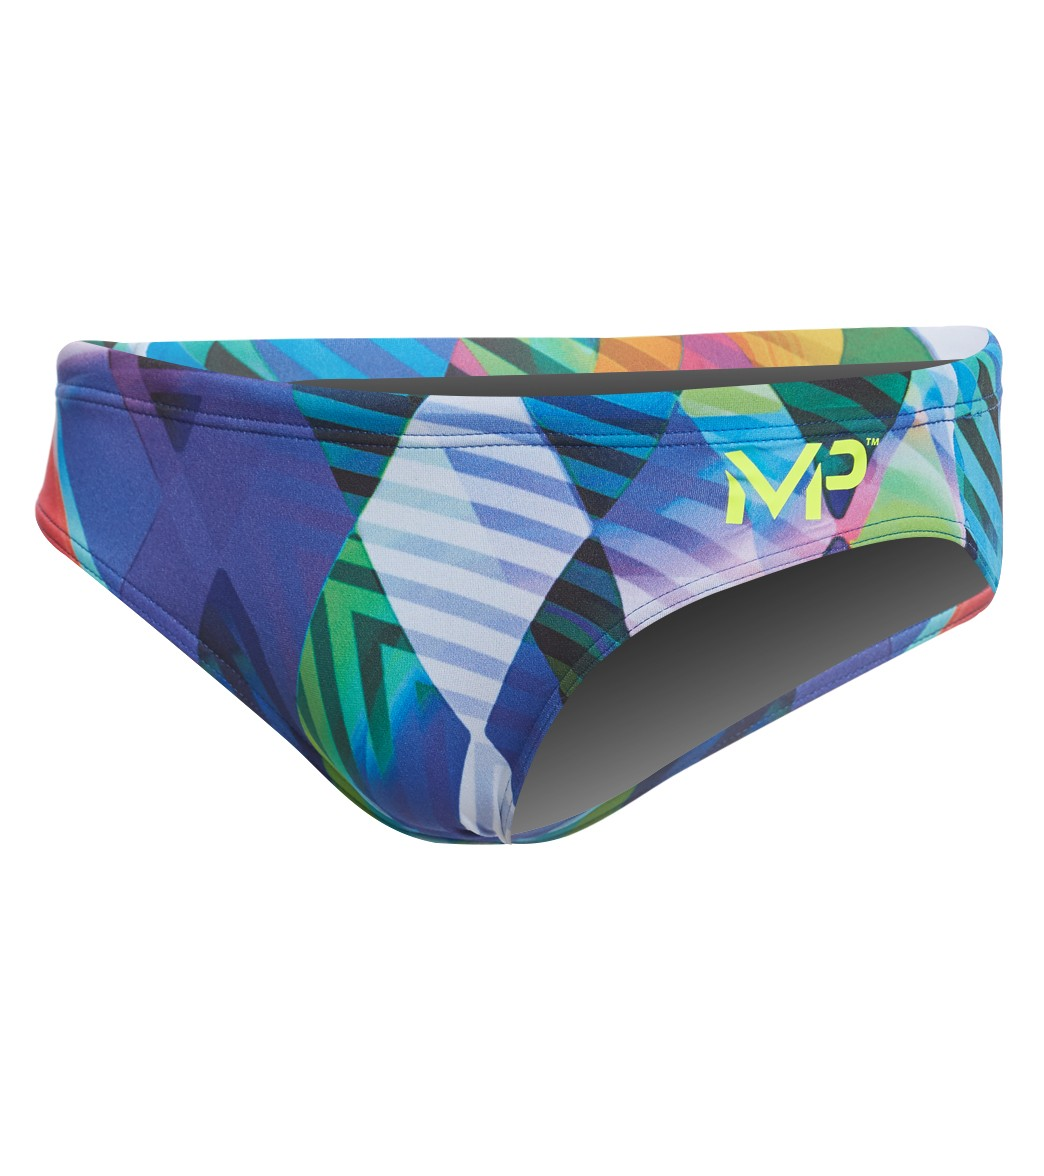 4b74c69f19 MP Michael Phelps Men's Zuglo Brief Swimsuit at SwimOutlet.com